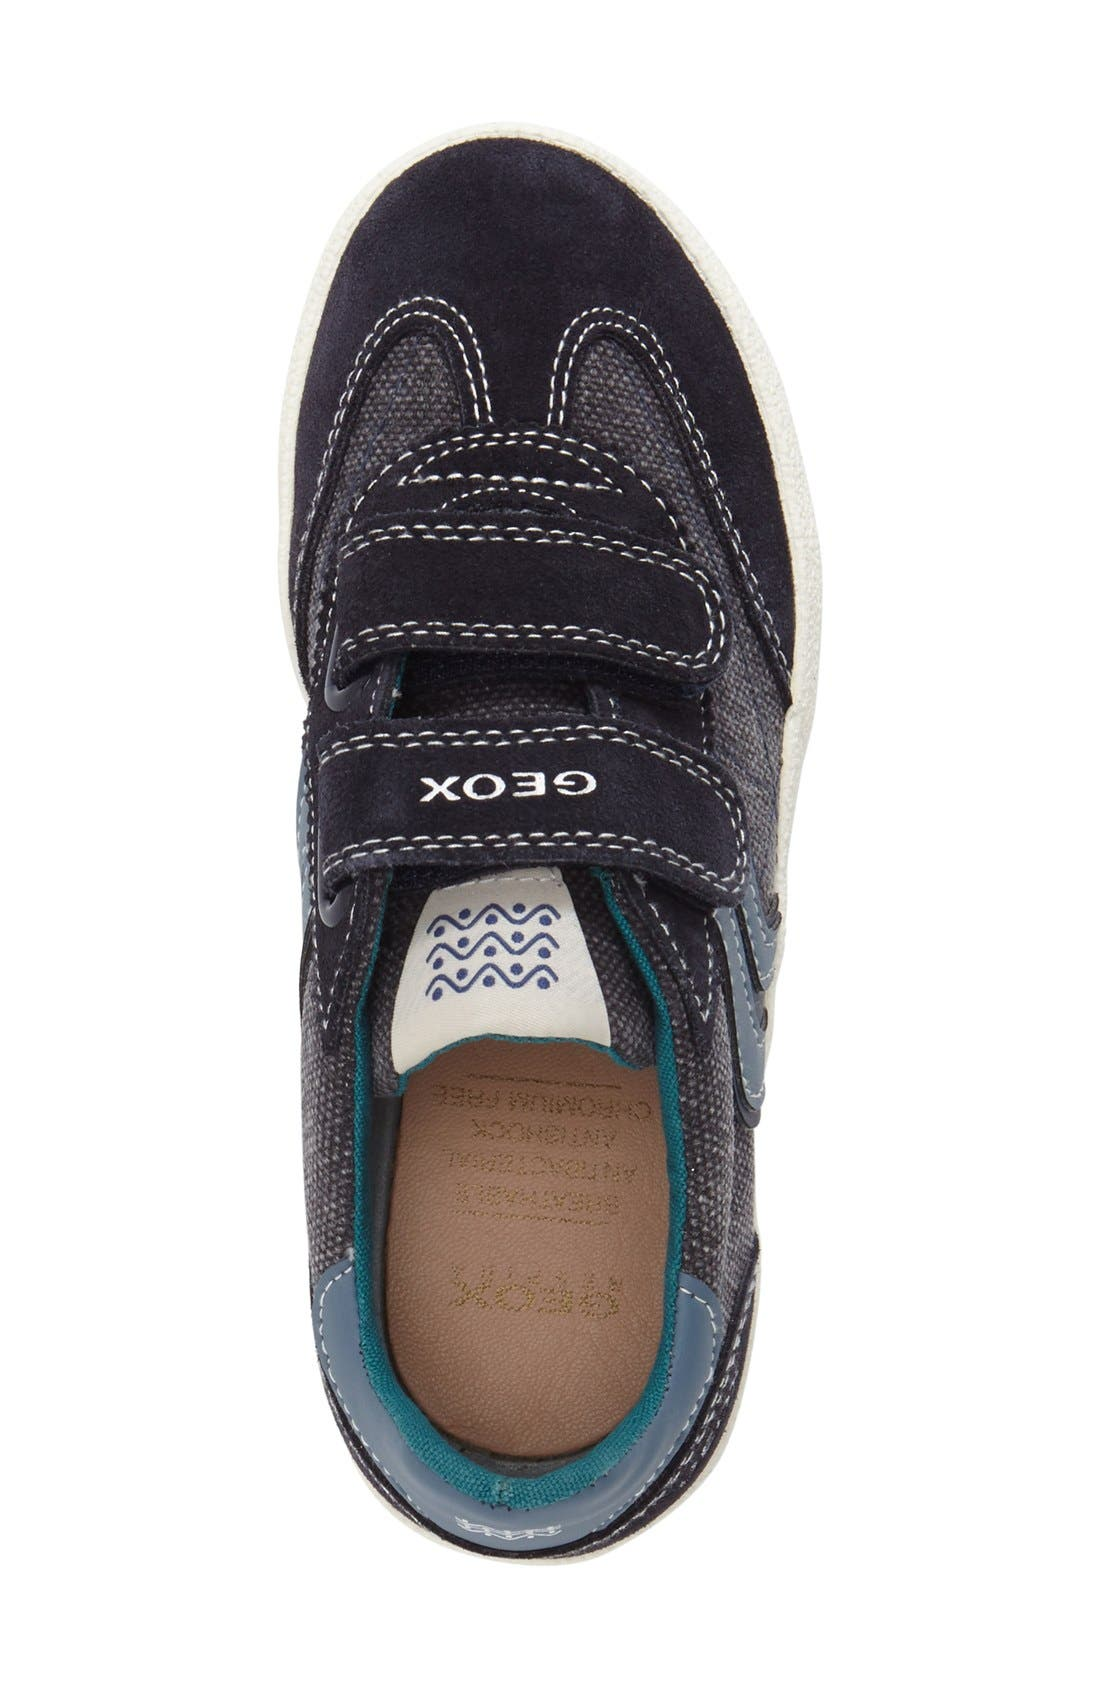 Alternate Image 3  - Geox 'Kiwi' Sneaker (Toddler, Little Kid & Big Kid)